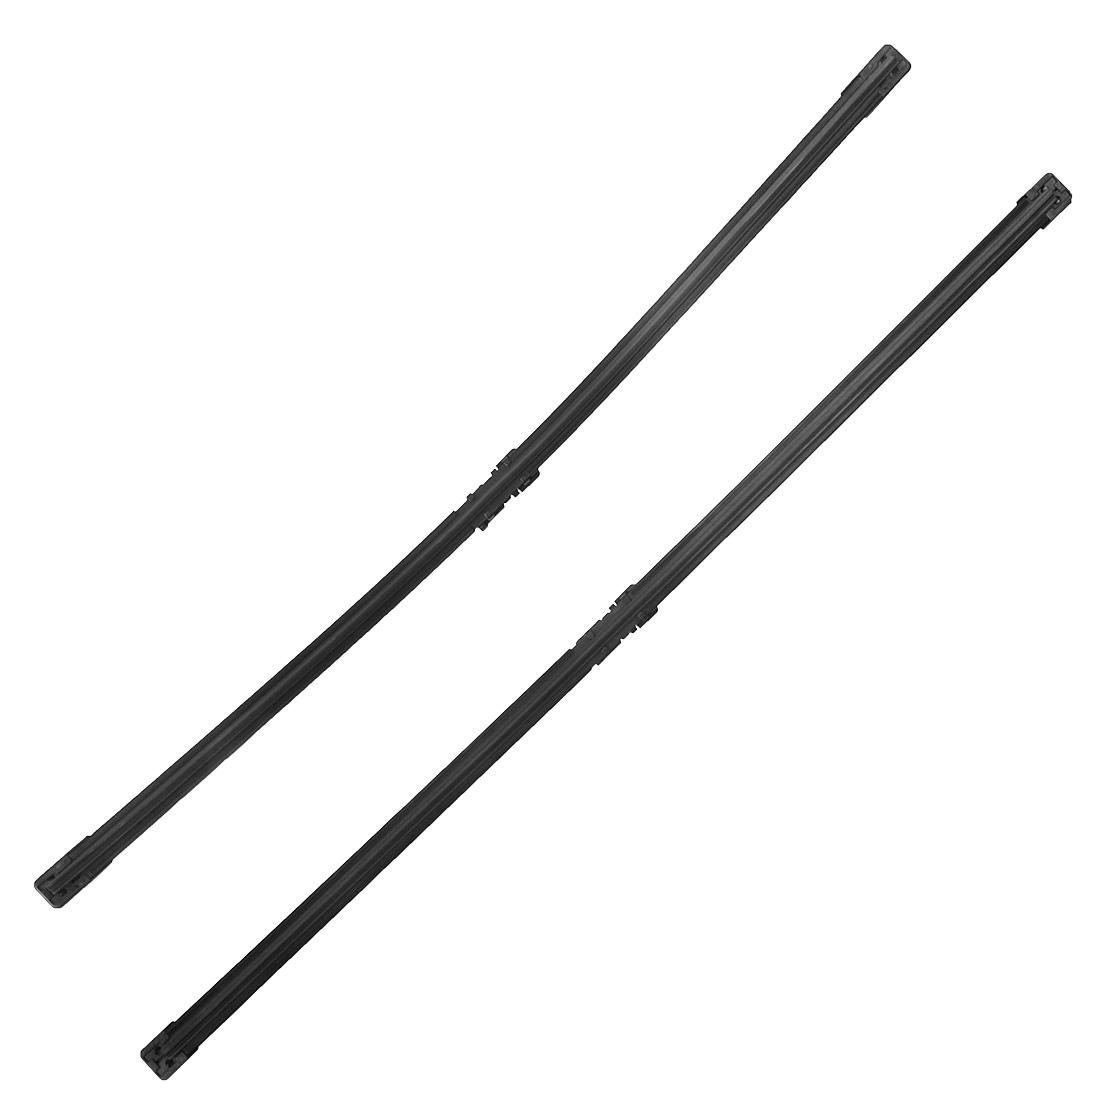 Car Windshield Wiper Blades 26-inch 14-inch Set of 2 for Fiat Linea (2008-Present)